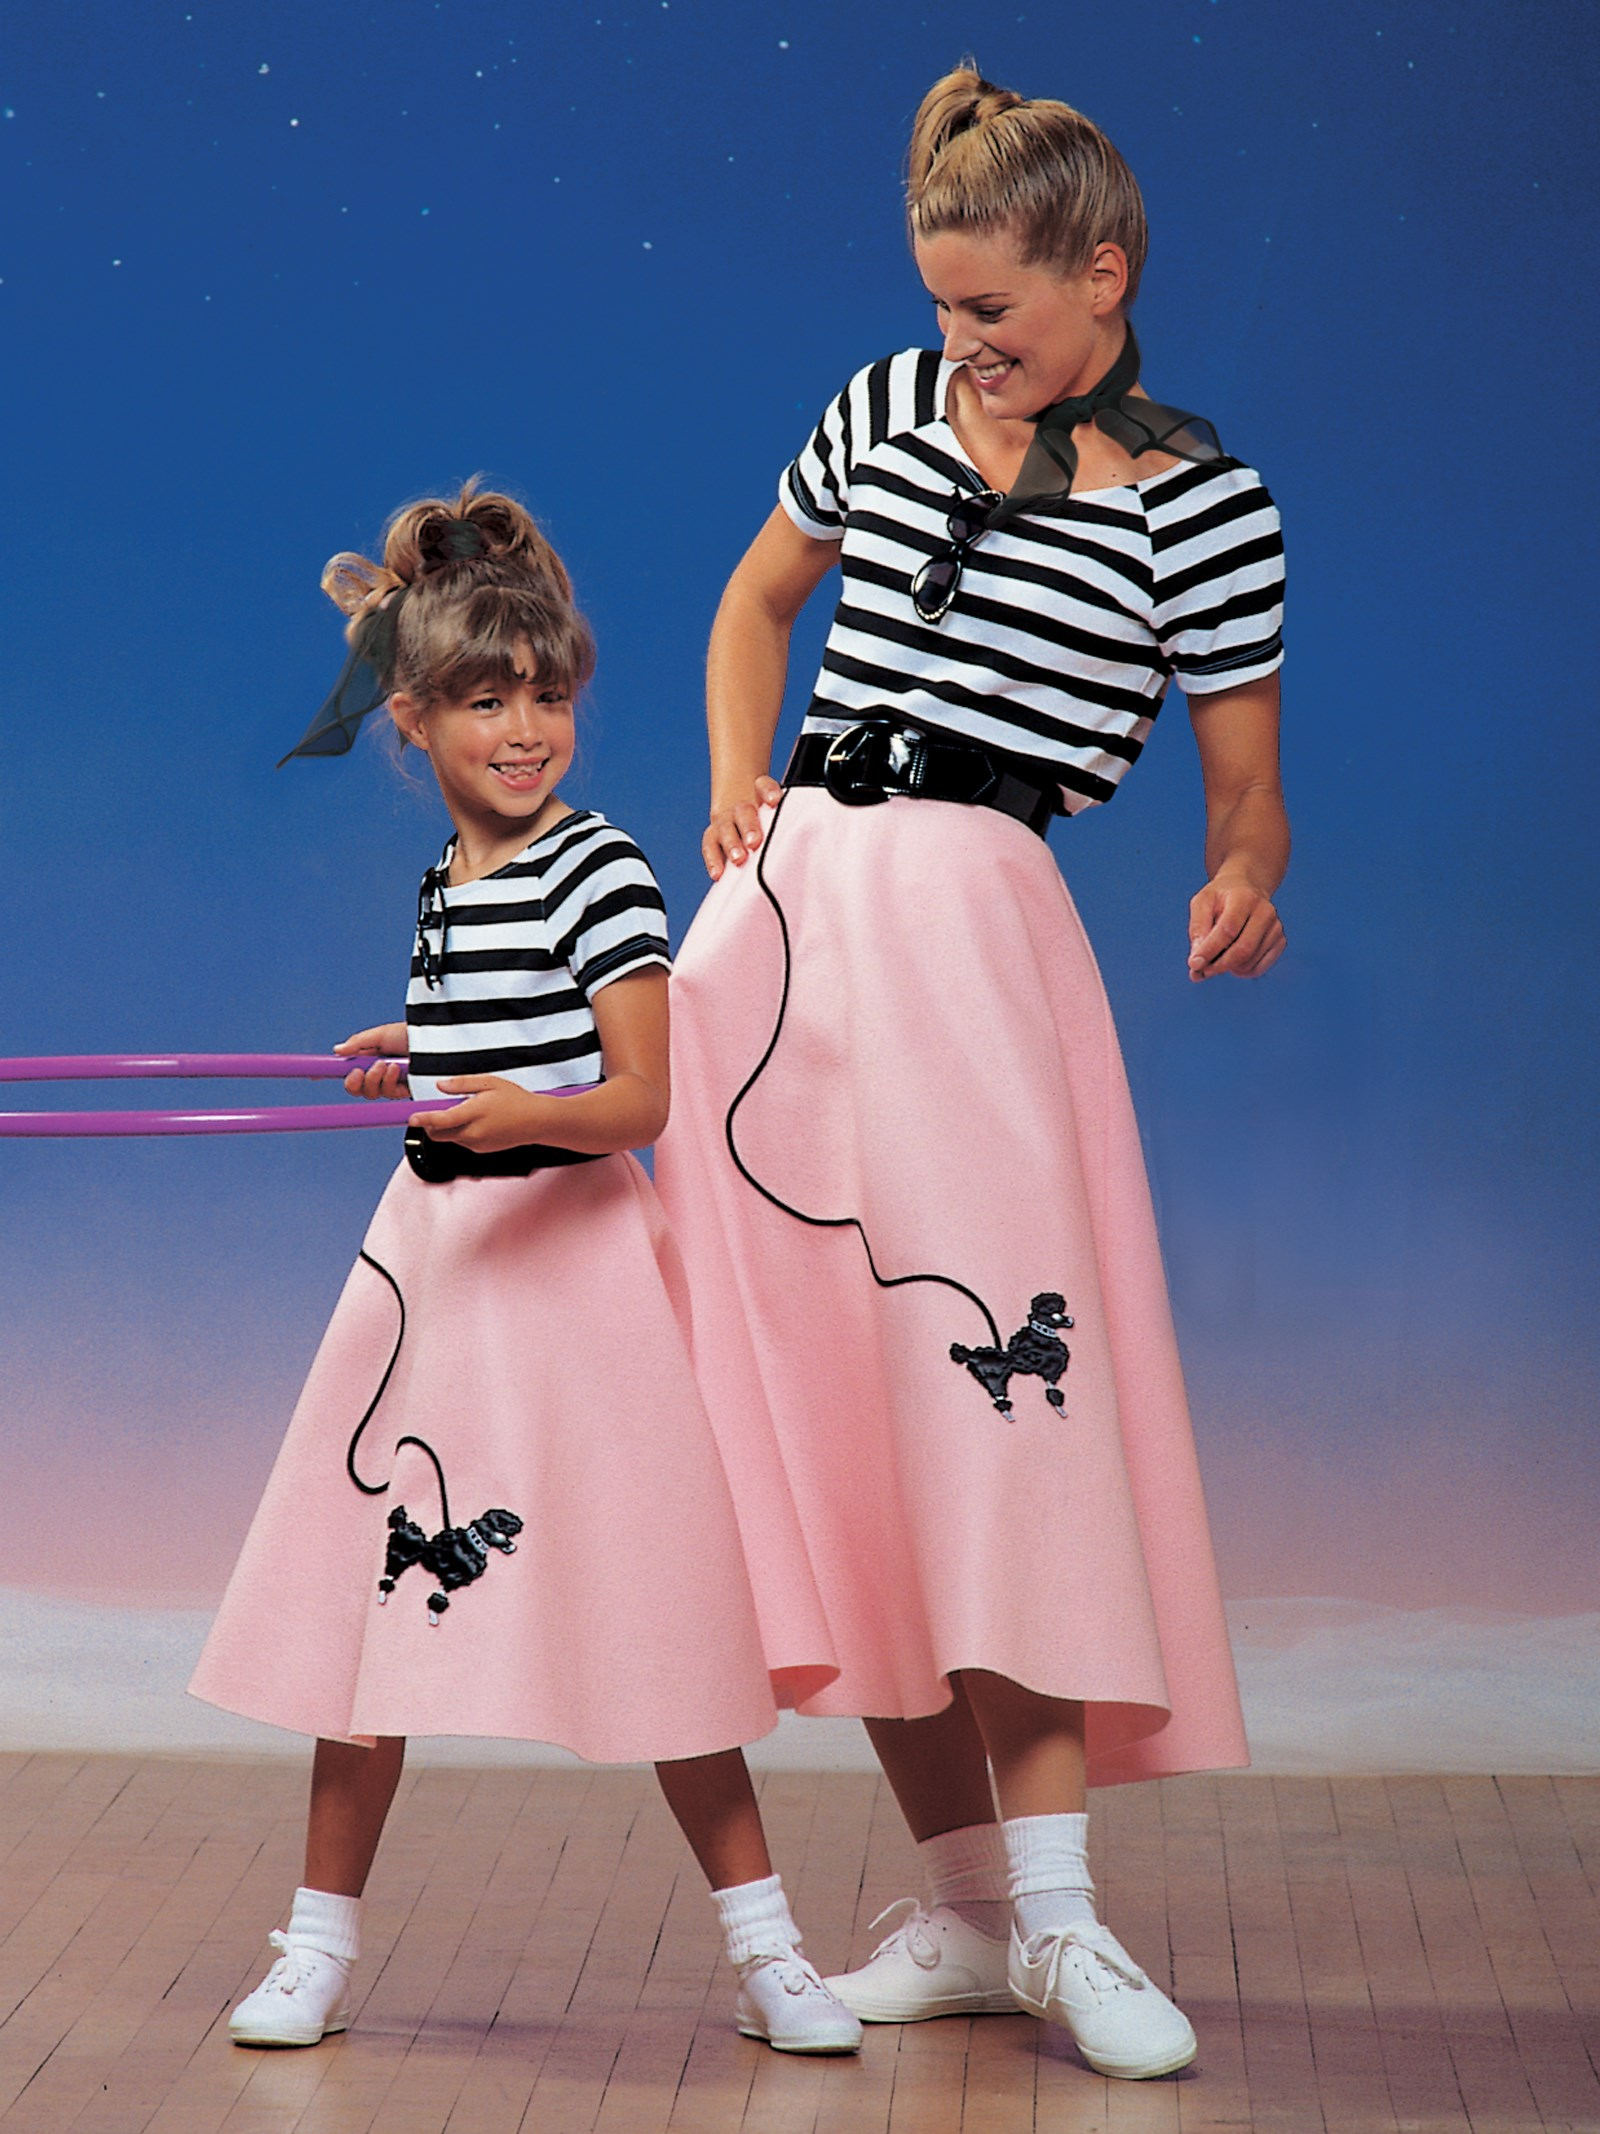 Image of 1950s Poodle Skirt Child Costume